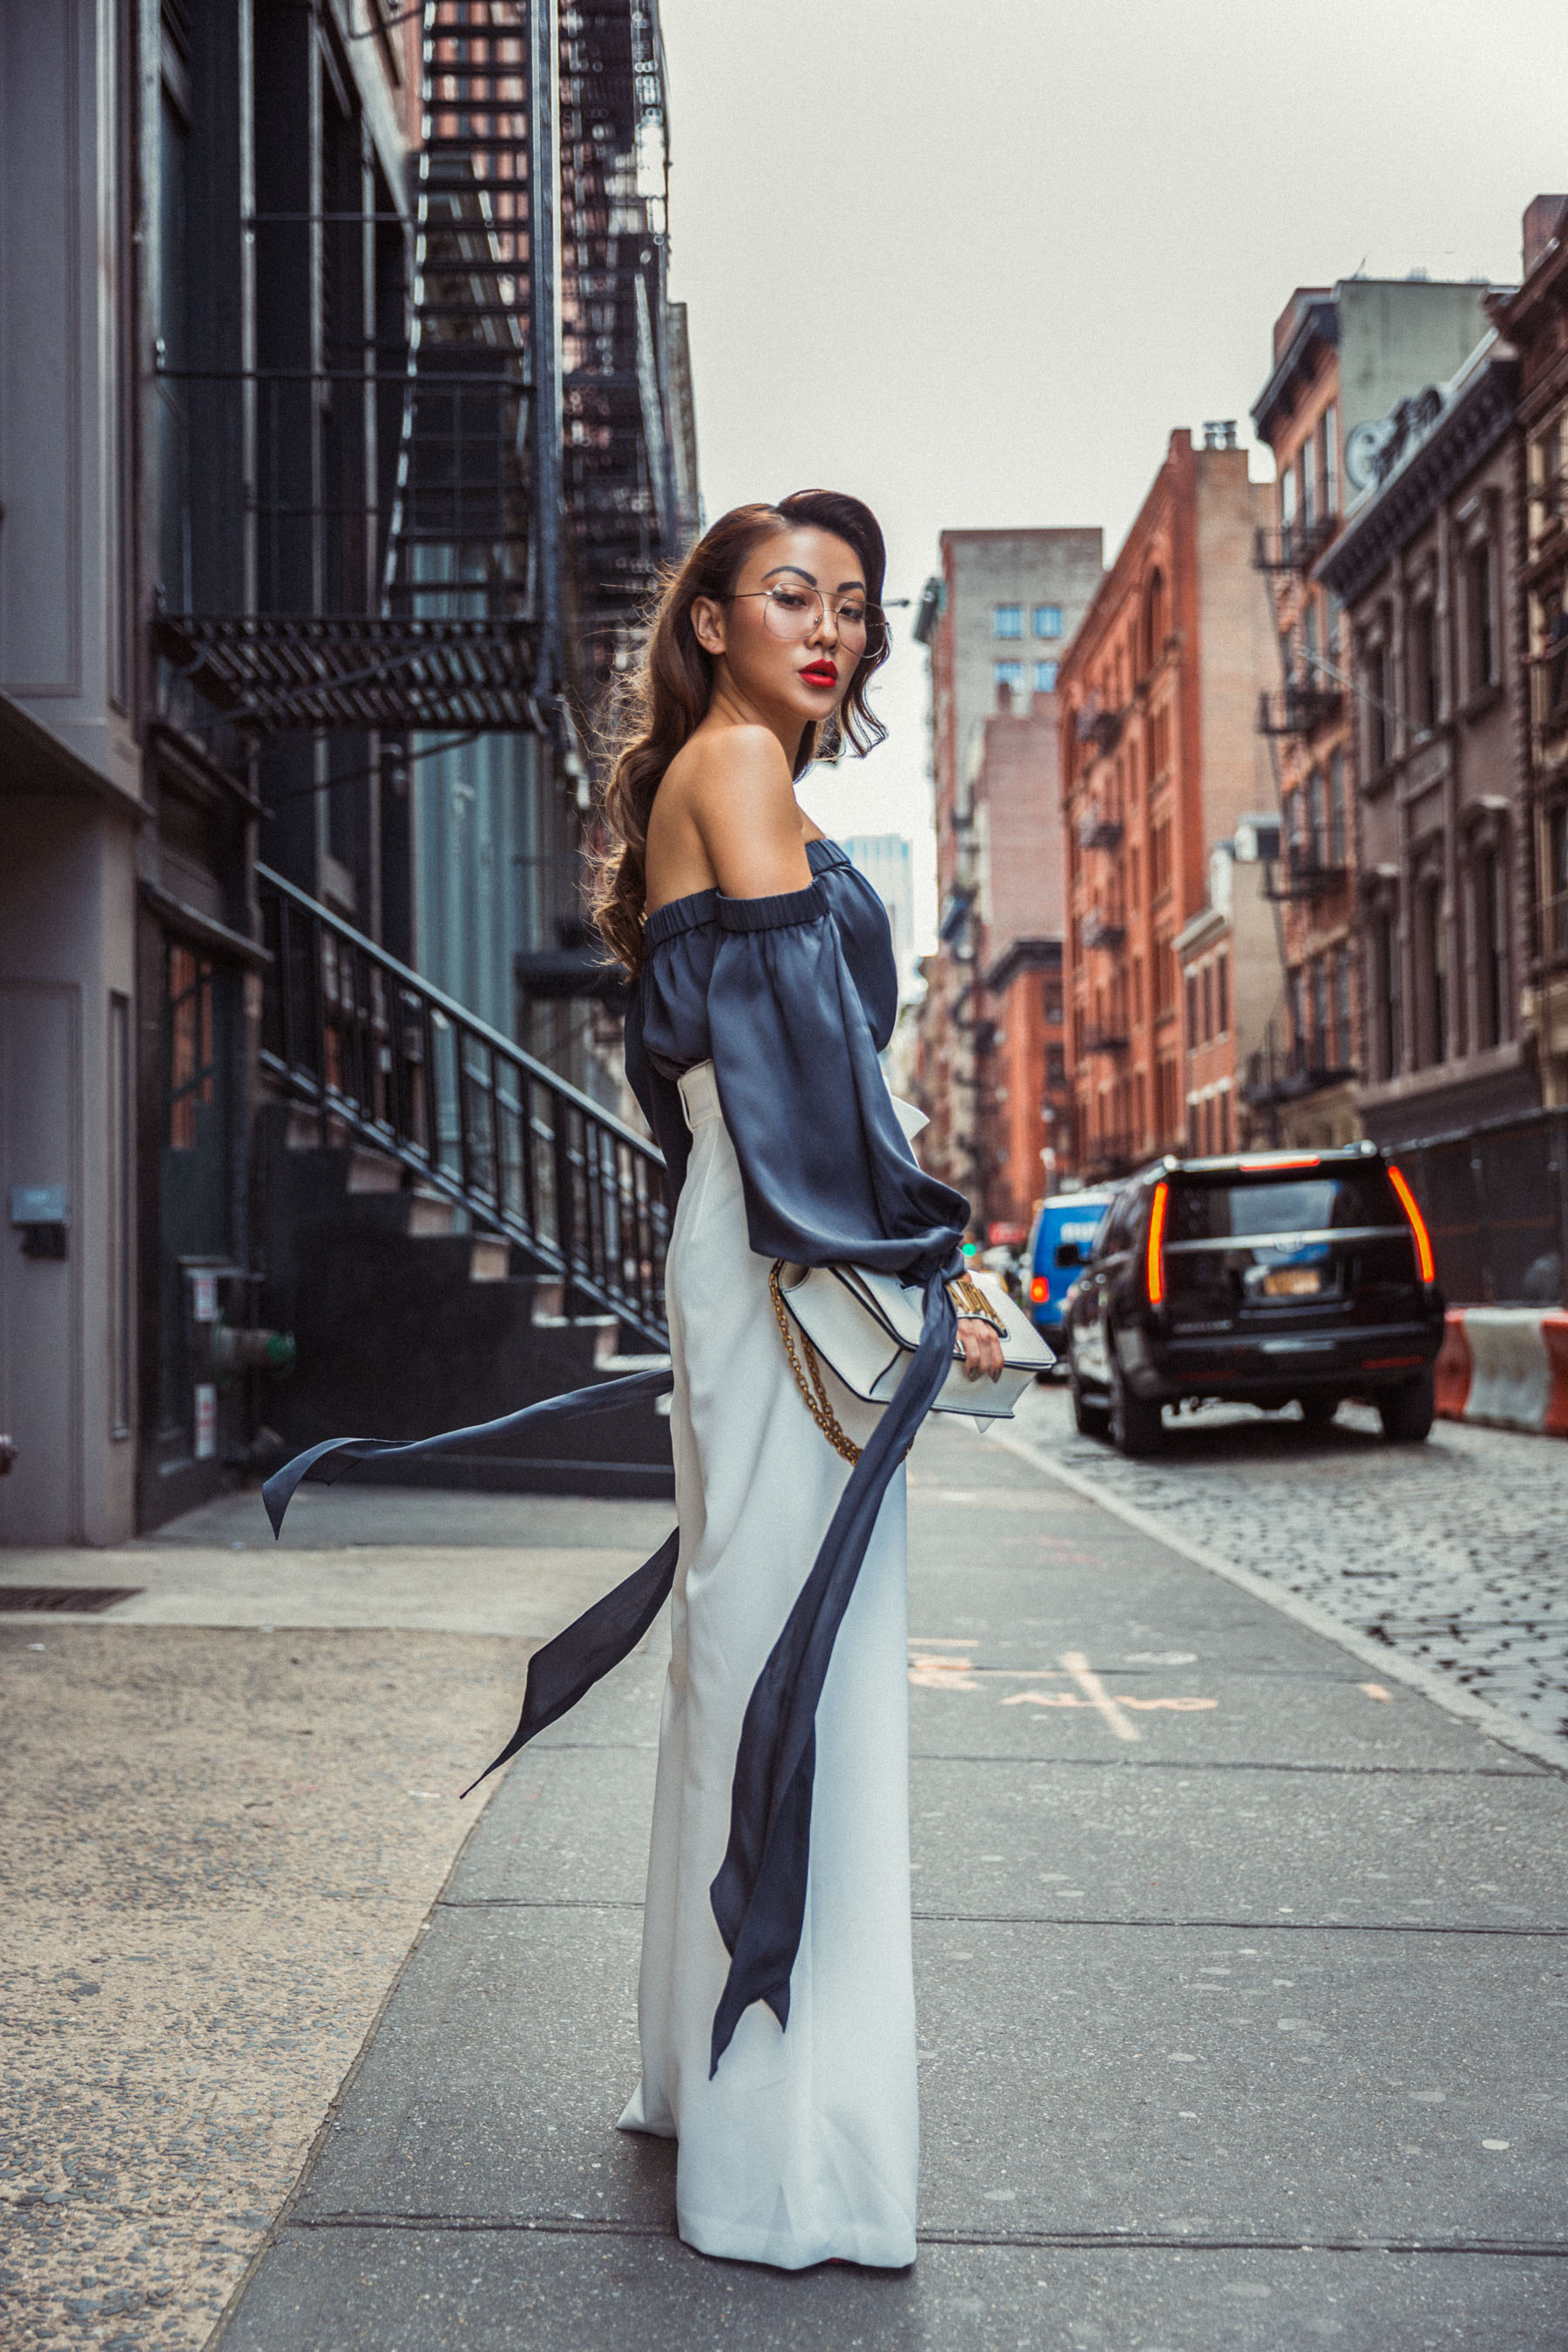 6 Crucial Tips for Surviving Fashion Week // Notjessfashion.com // Wide leg trousers, nyfw street style, nyfw ss18 street style, fashion blogger street style, fashion blogger nyfw, jessica wang, top blogger, nyc blogger, asian blogger, fashion week outfit